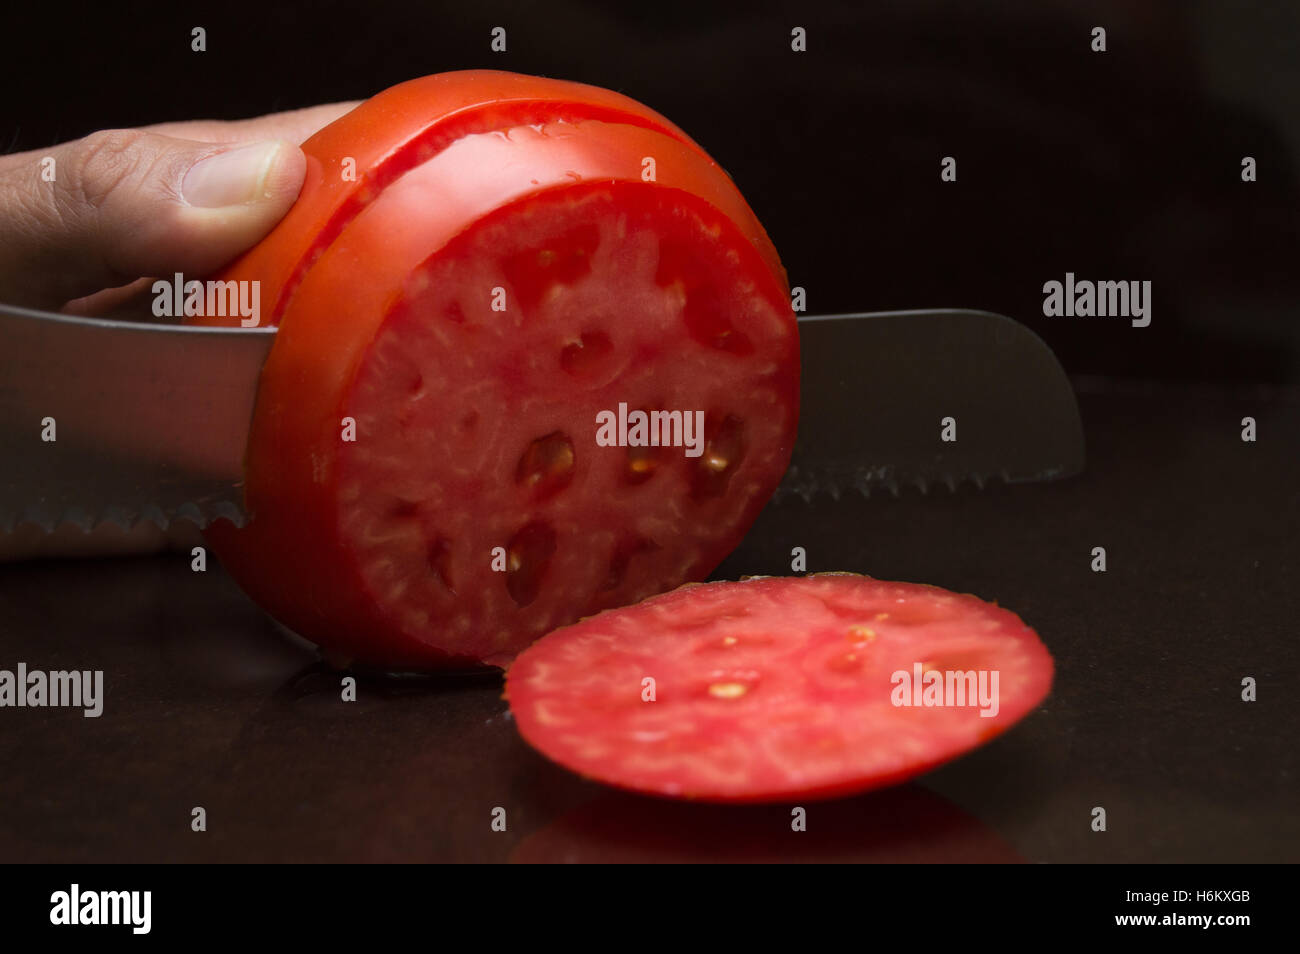 Close Up of Person Slicing a Large, Ripe, Organic Tomato with a Serrated Knife on a Dark Brown Counter Top - Stock Image